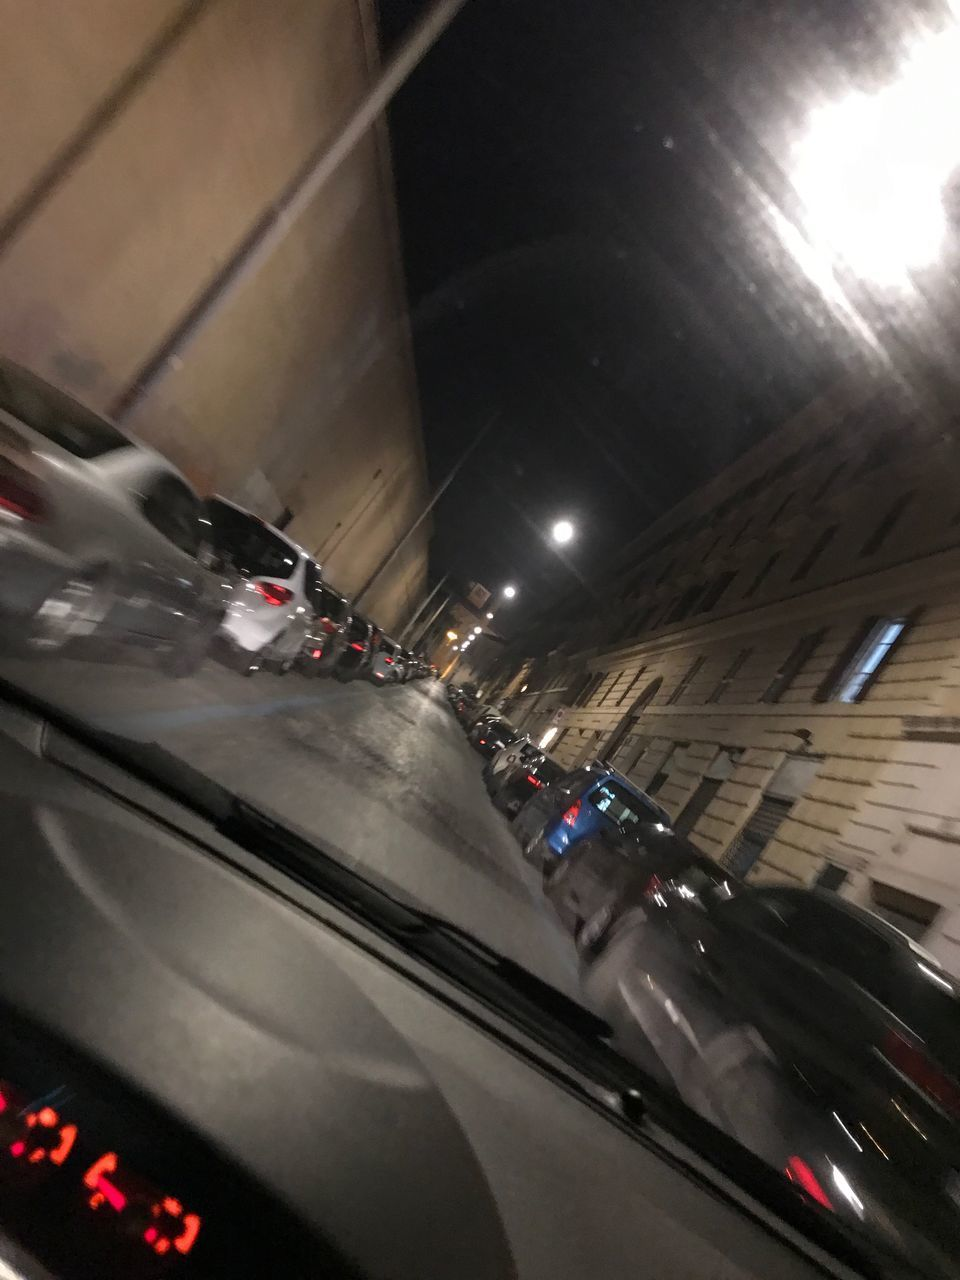 transportation, mode of transportation, car, illuminated, motor vehicle, architecture, land vehicle, motion, indoors, city, on the move, travel, road, night, vehicle interior, built structure, windshield, lighting equipment, high angle view, incidental people, car point of view, ceiling